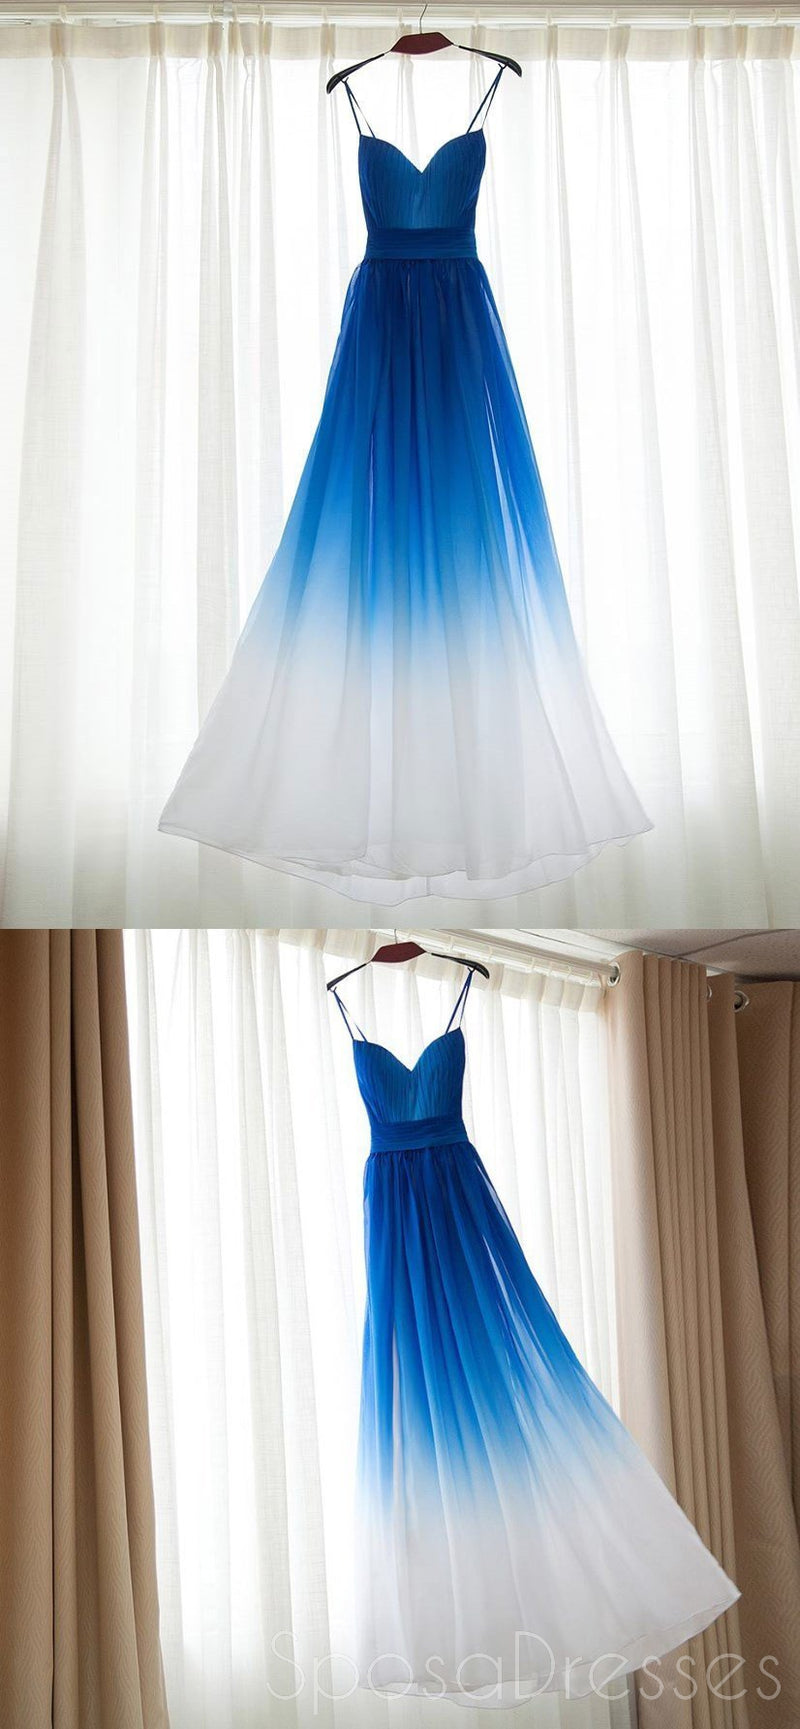 Ombre Blue Chiffon Sweetheart Neckline Long Evening Prom Dresses, Popular Cheap Long Custom Party Prom Dresses, 17314